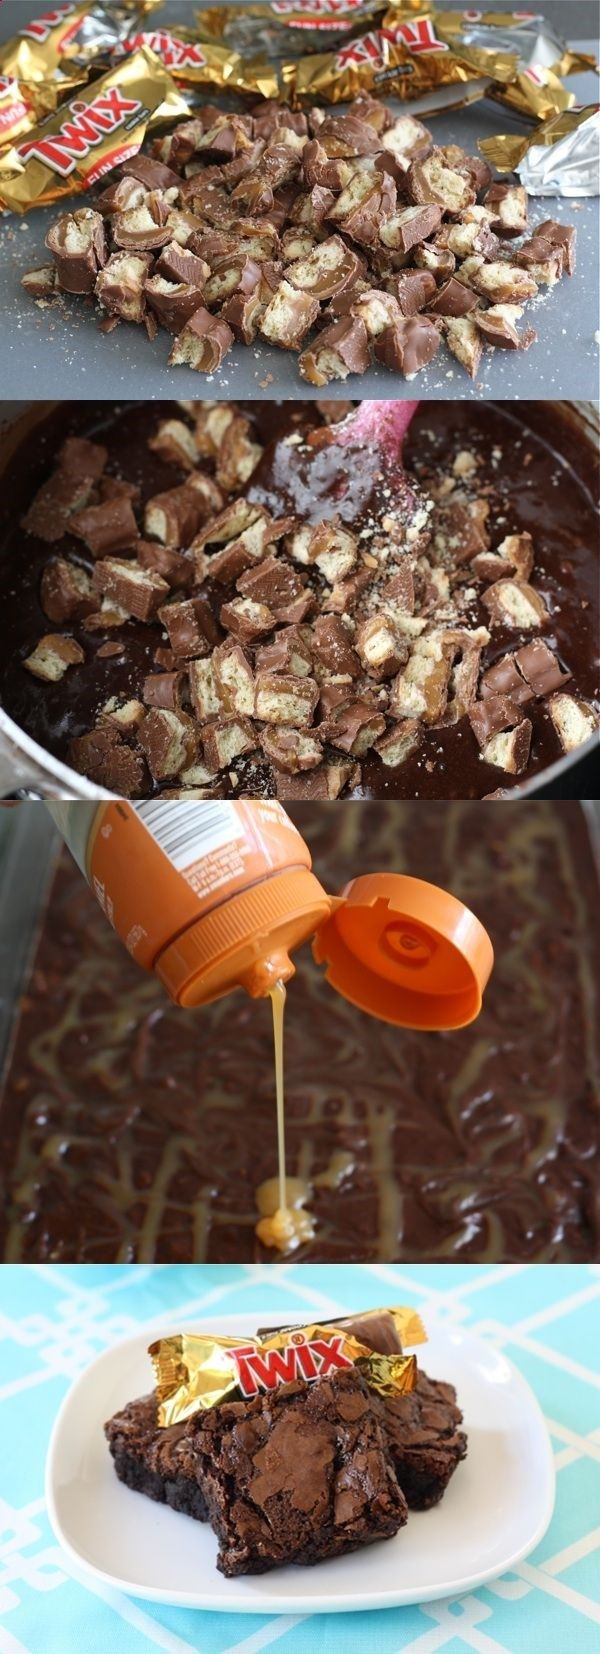 Twix Caramel Brownies | Favorite Recipes | Pinterest